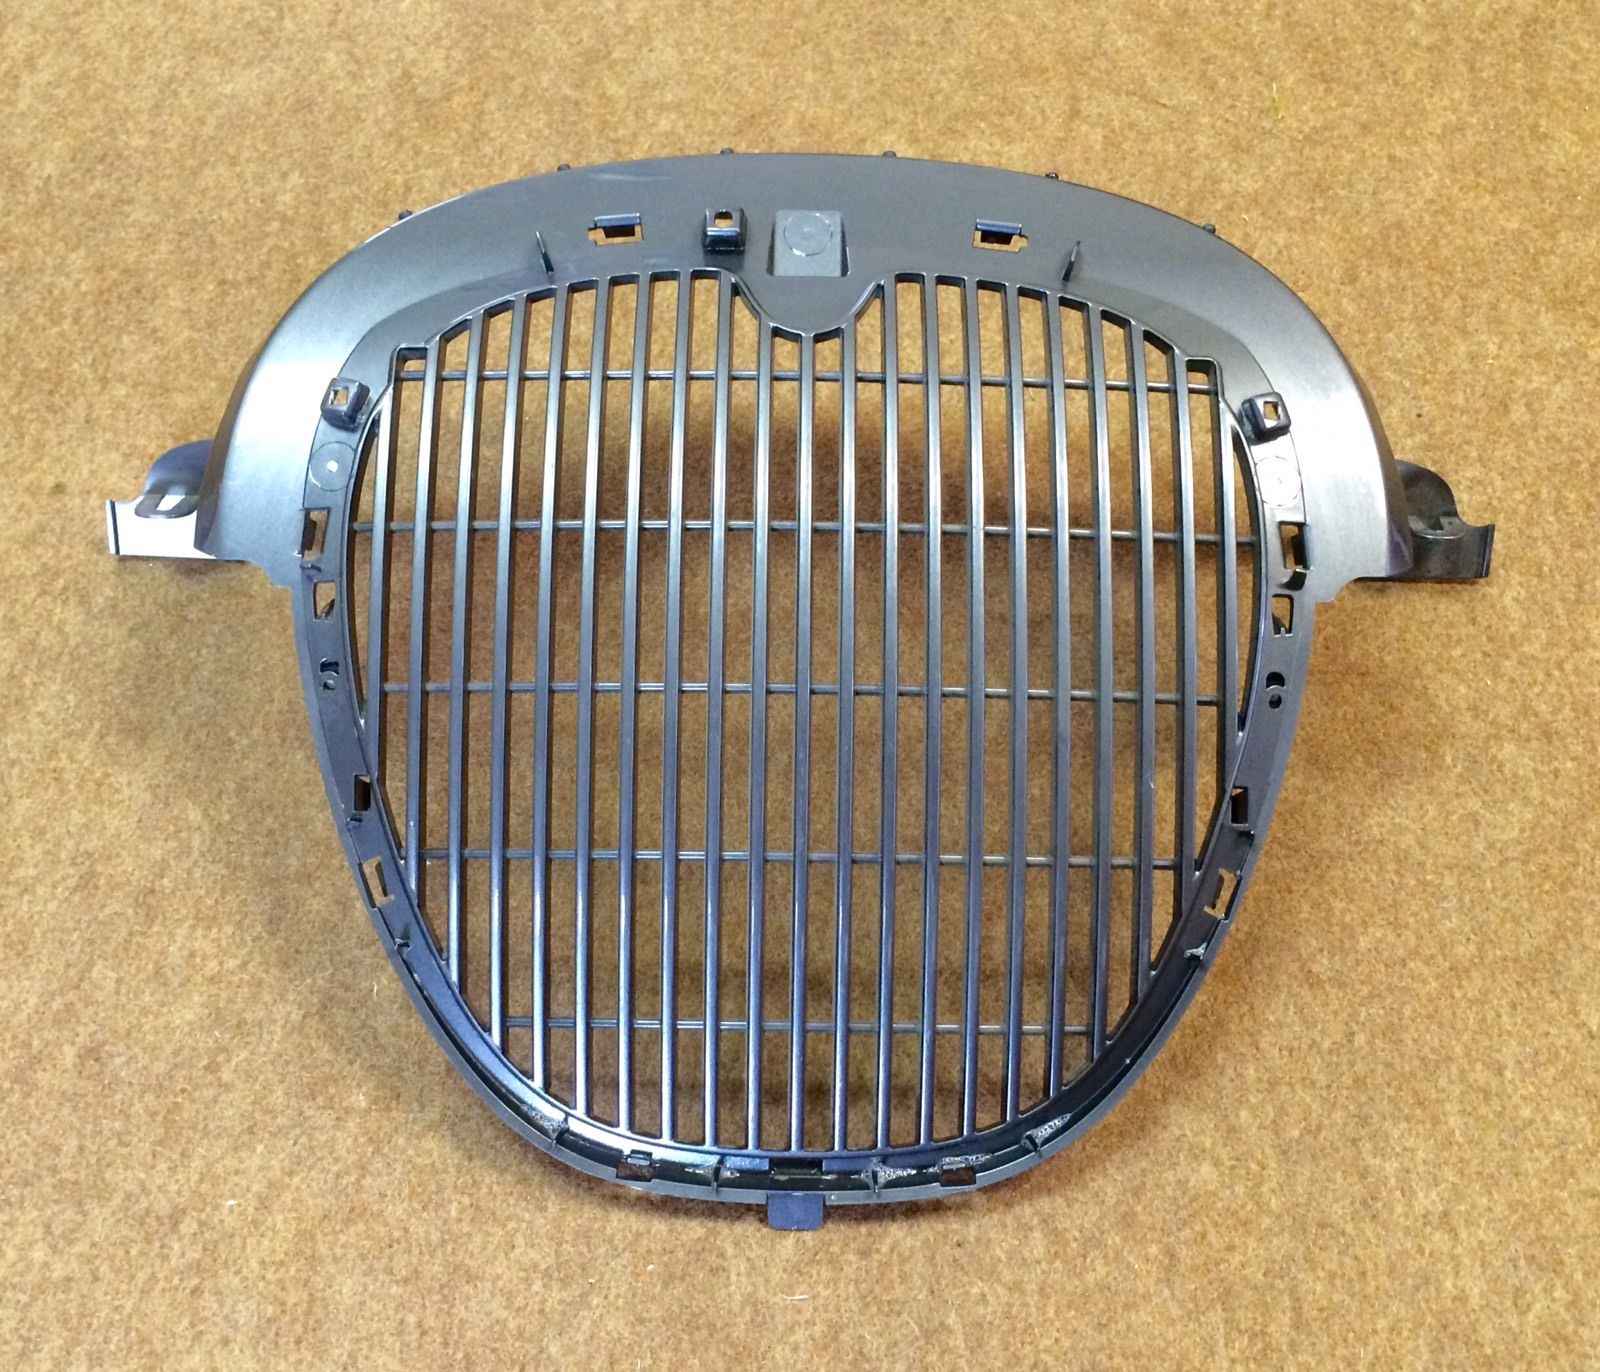 JAGUAR S-TYPE FRONT GRILLE (GREY) NO CHROME- XR847246.